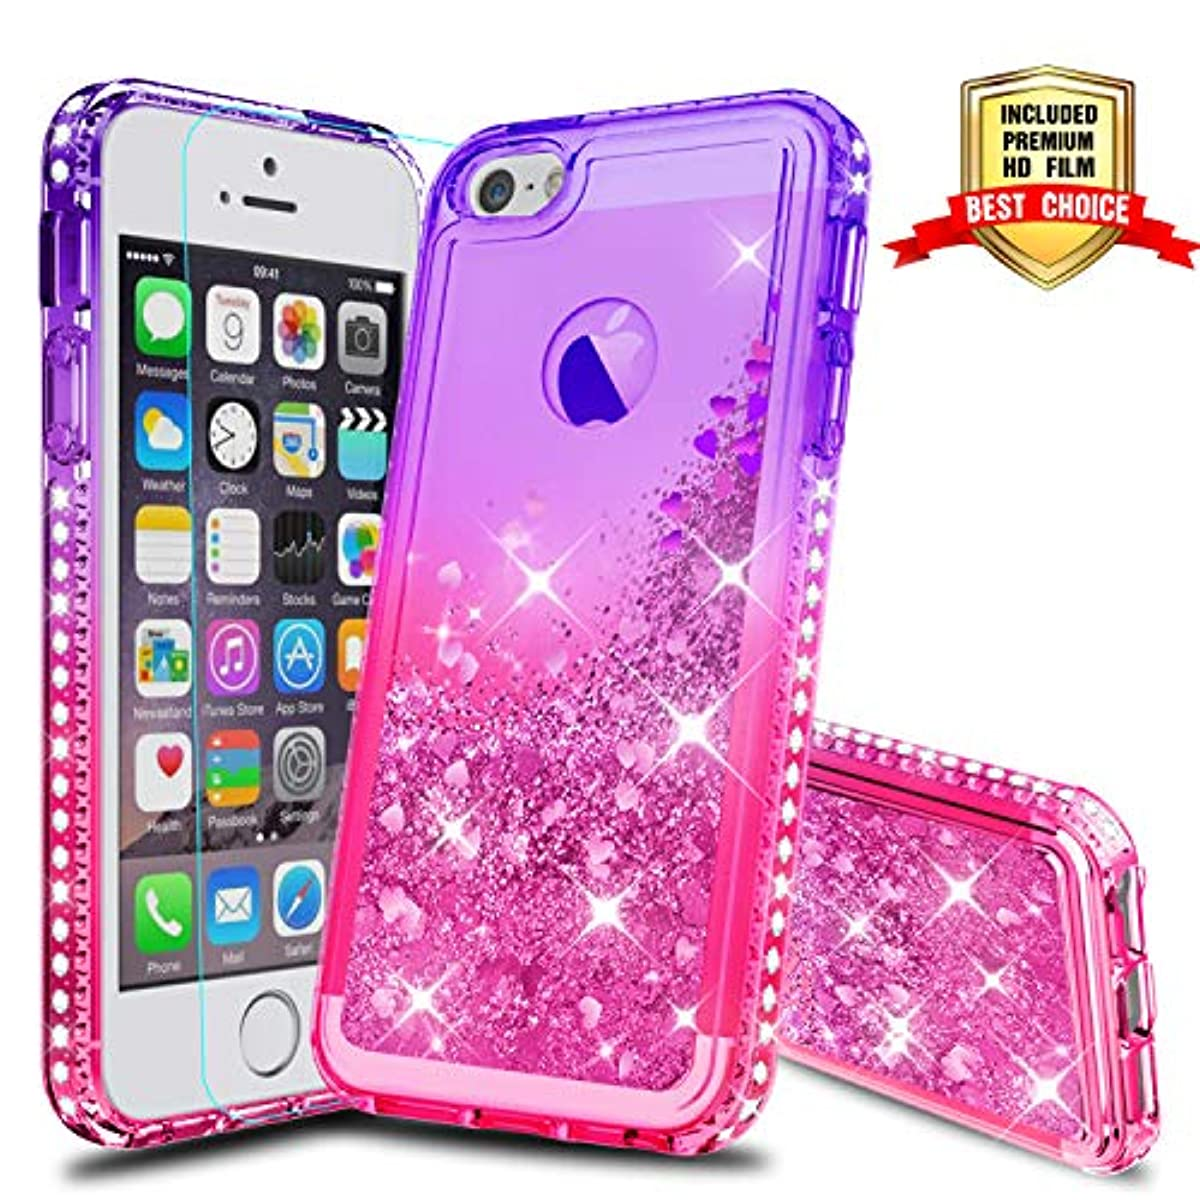 sneakers for cheap ec69b 58edf Details about iPhone 5S Case, iPhone SE Girly Cases with HD Screen  Protector, Atump Fun Glitte